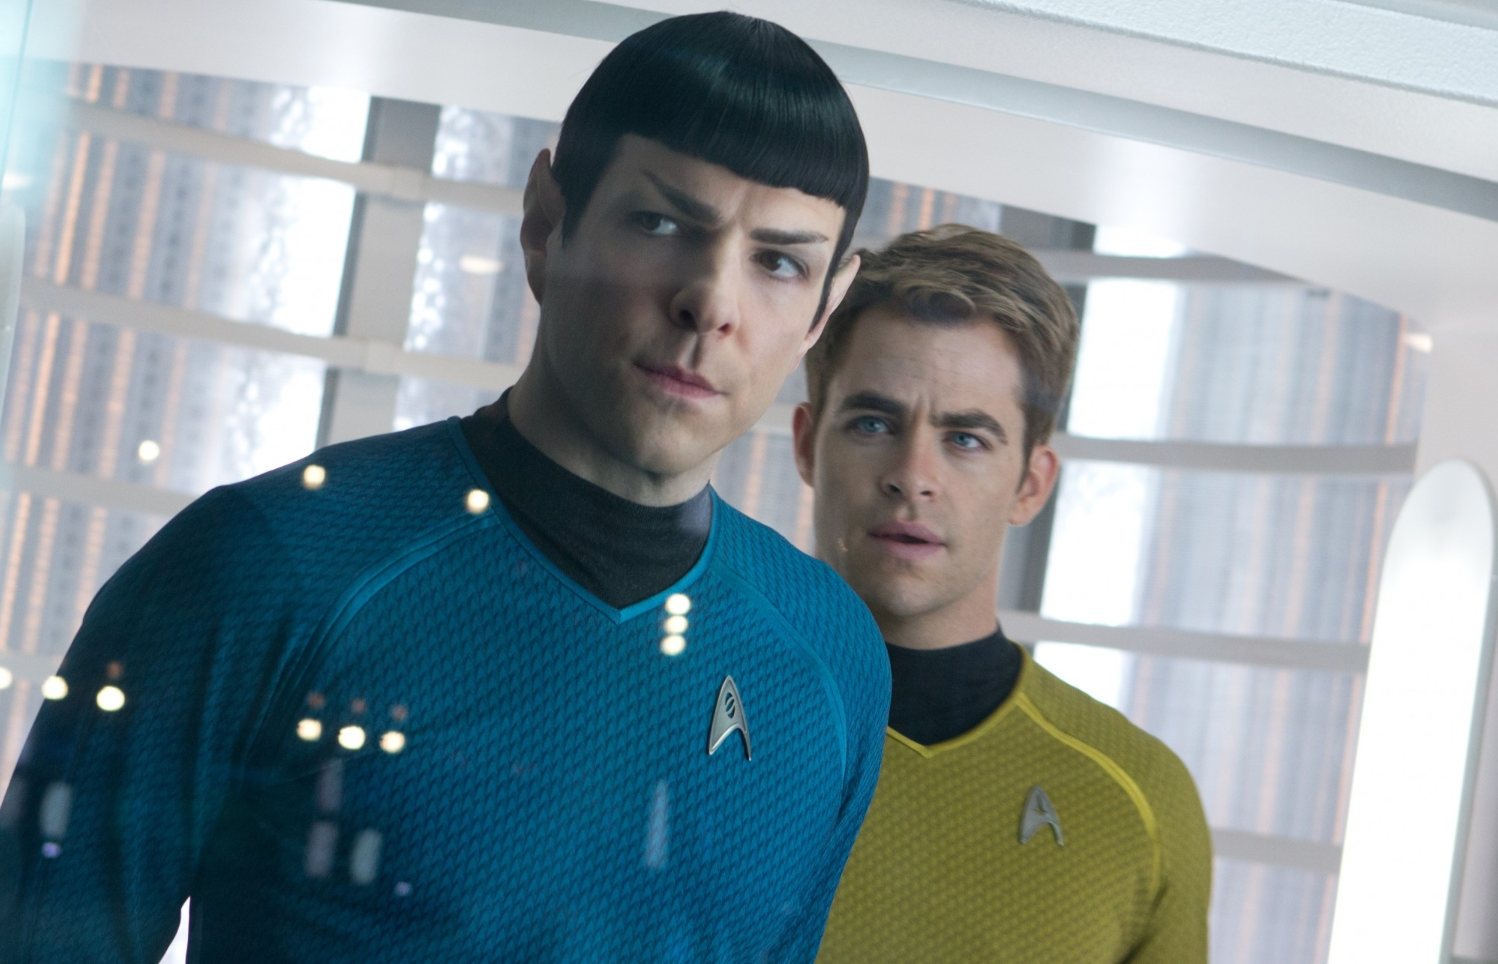 Zachary Quinto as Spock and Chris Pine as Kirk in Star Trek Into Darkness